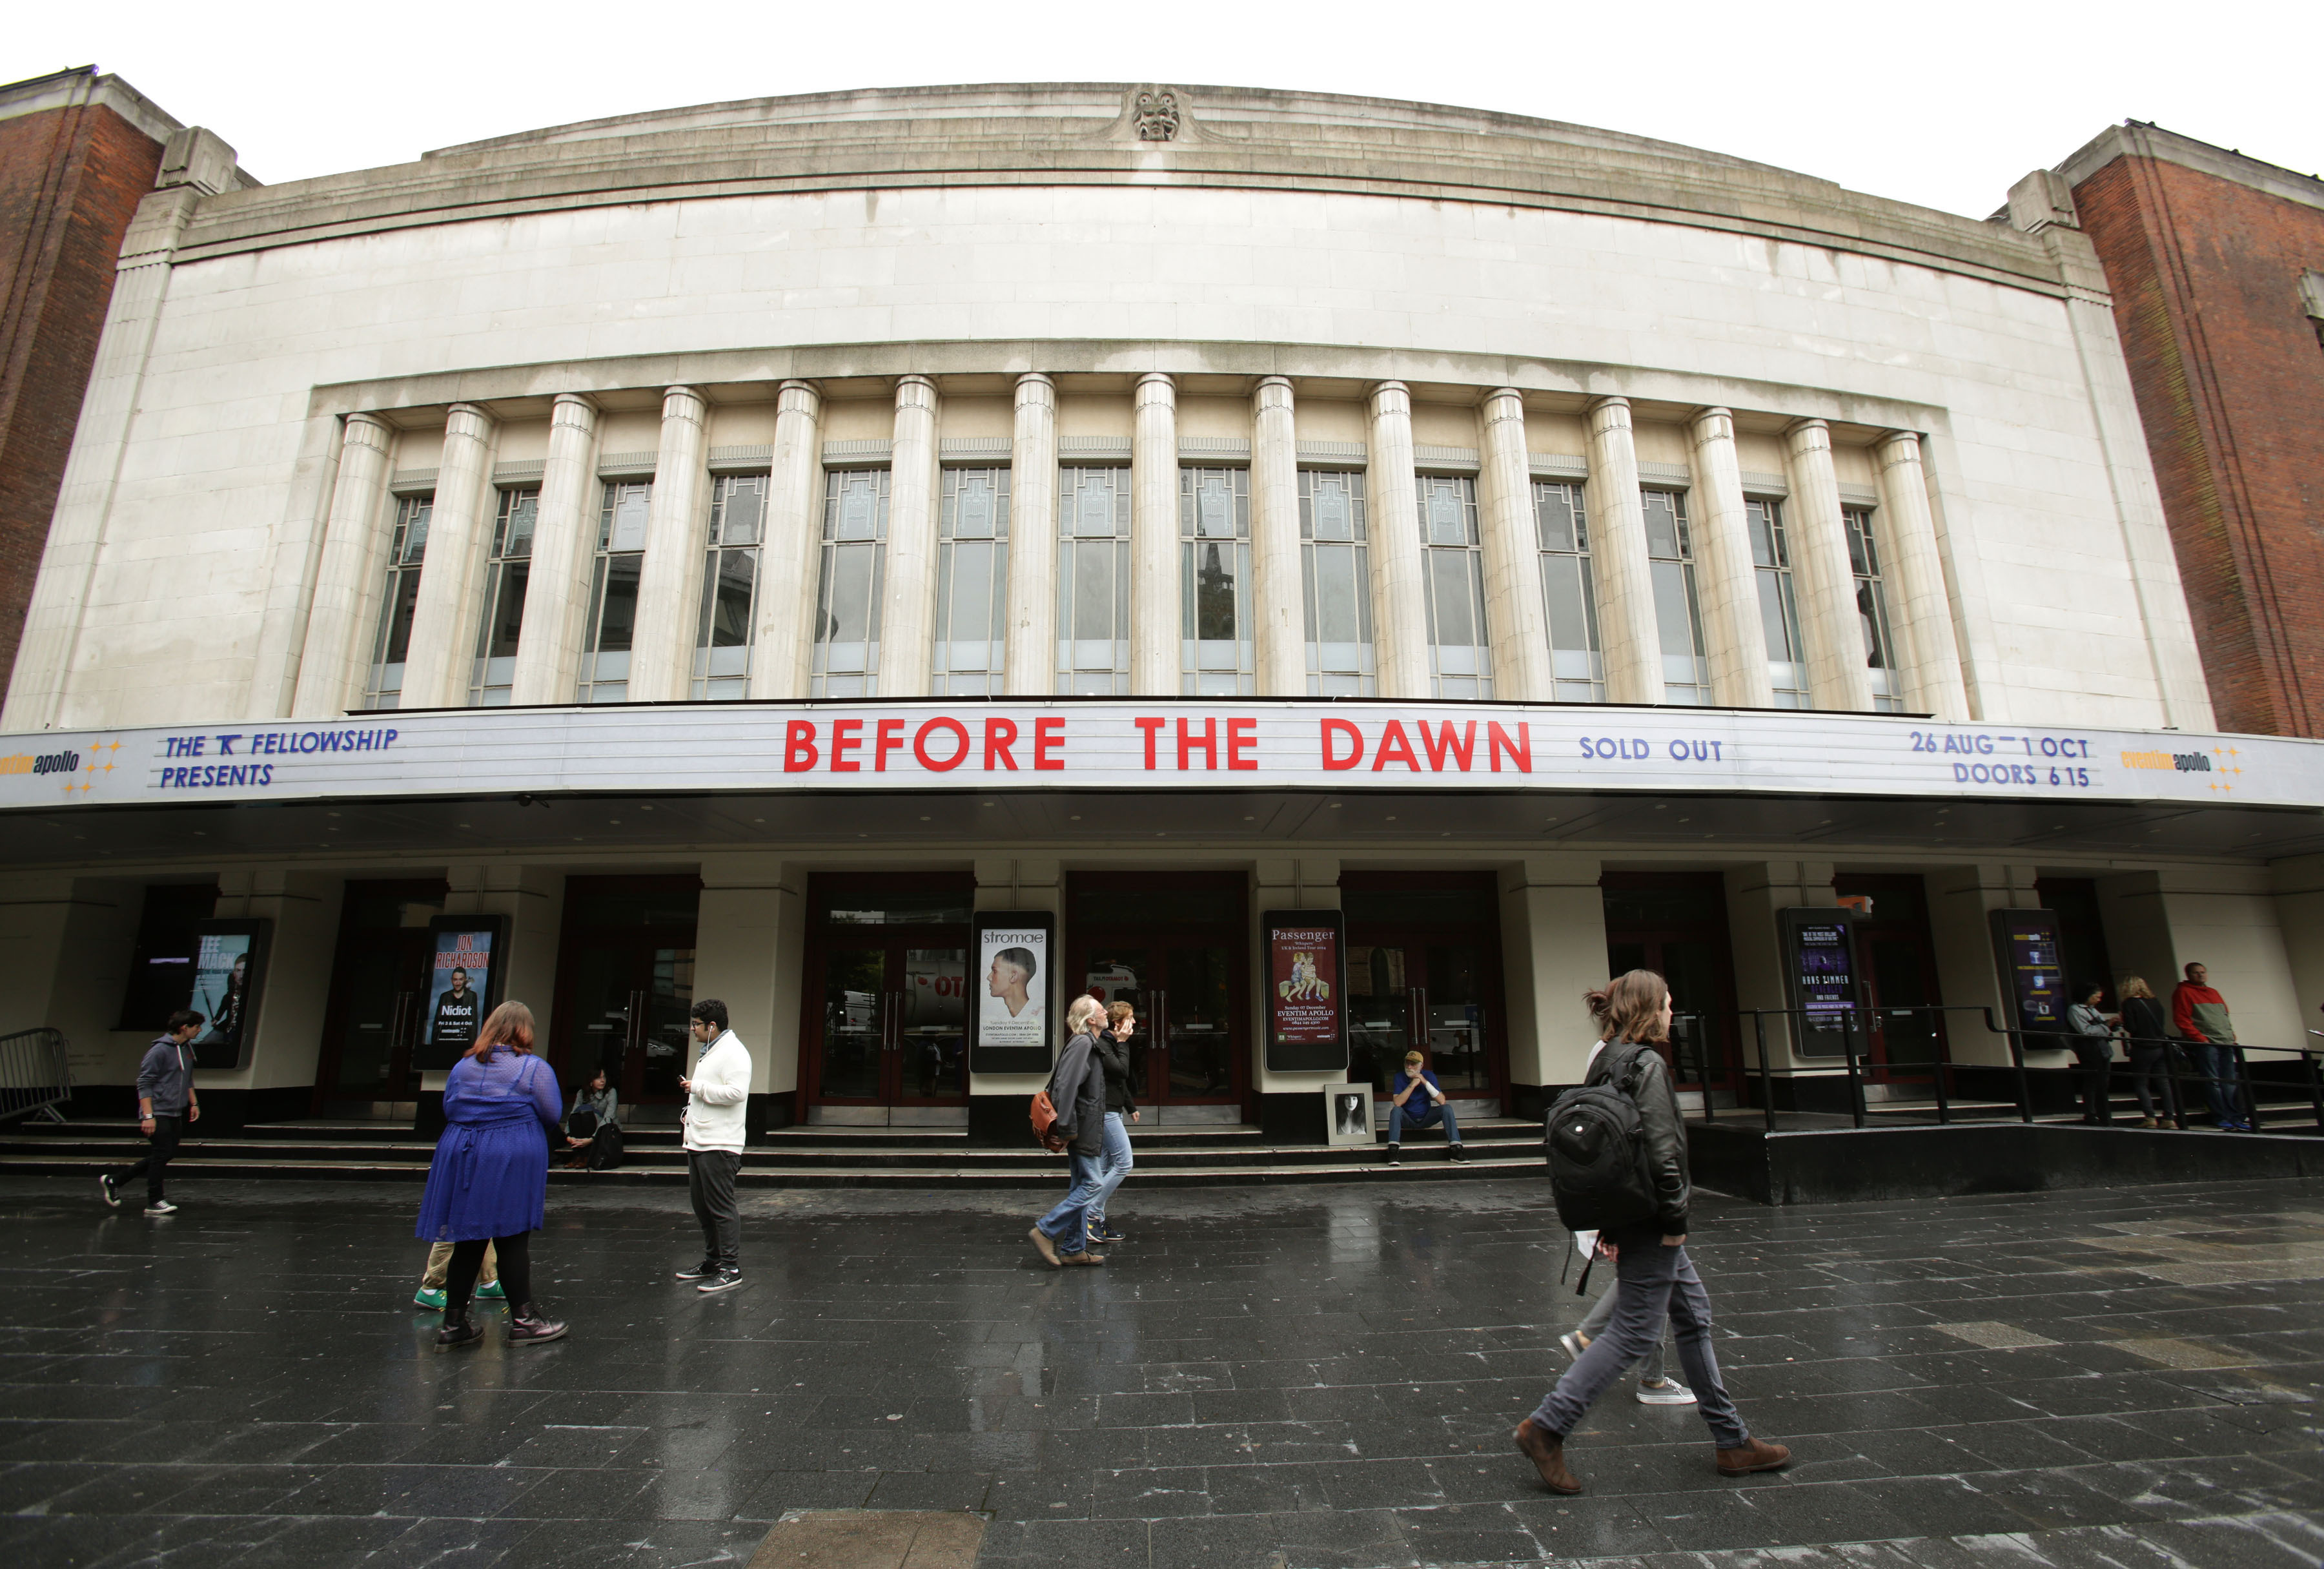 Kate Bush new tour. The Hammersmith Apollo, London, ahead of the singer Kate Bush's 'Before the Dawn' concert. Picture date: